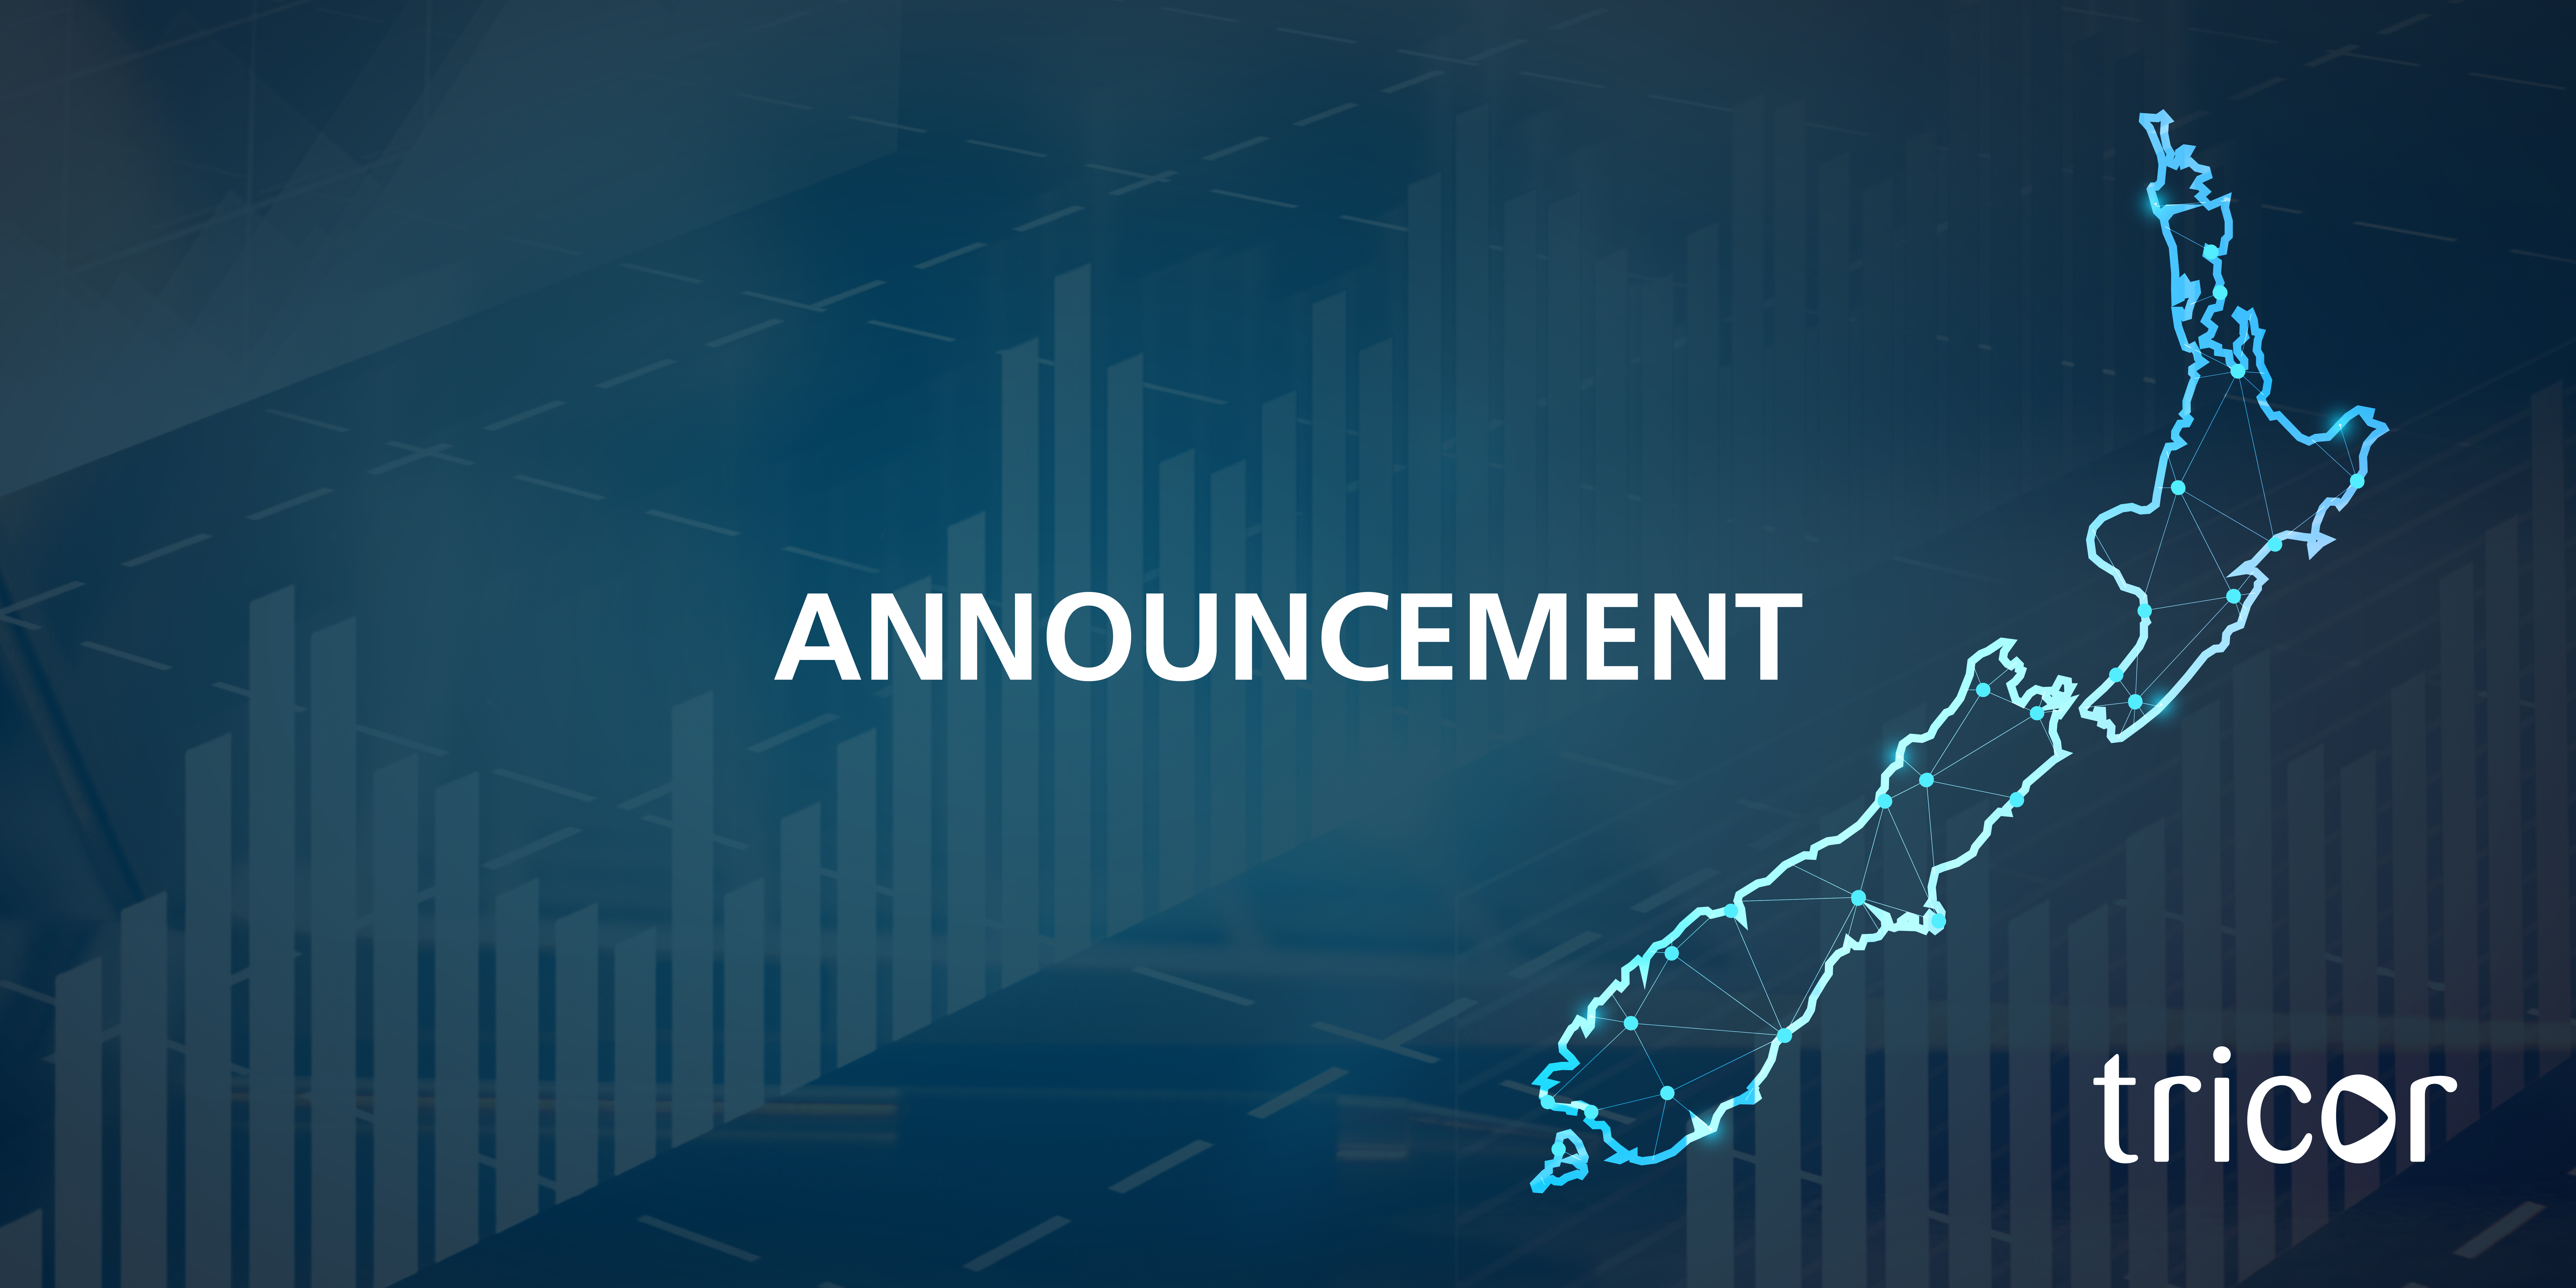 Tricor Group Signs a Sale and Purchase Agreement to Acquire NZGT Holding Company Limited Expanding Corporate Trust Business and Broadening APAC Footprint Covering New Zealand